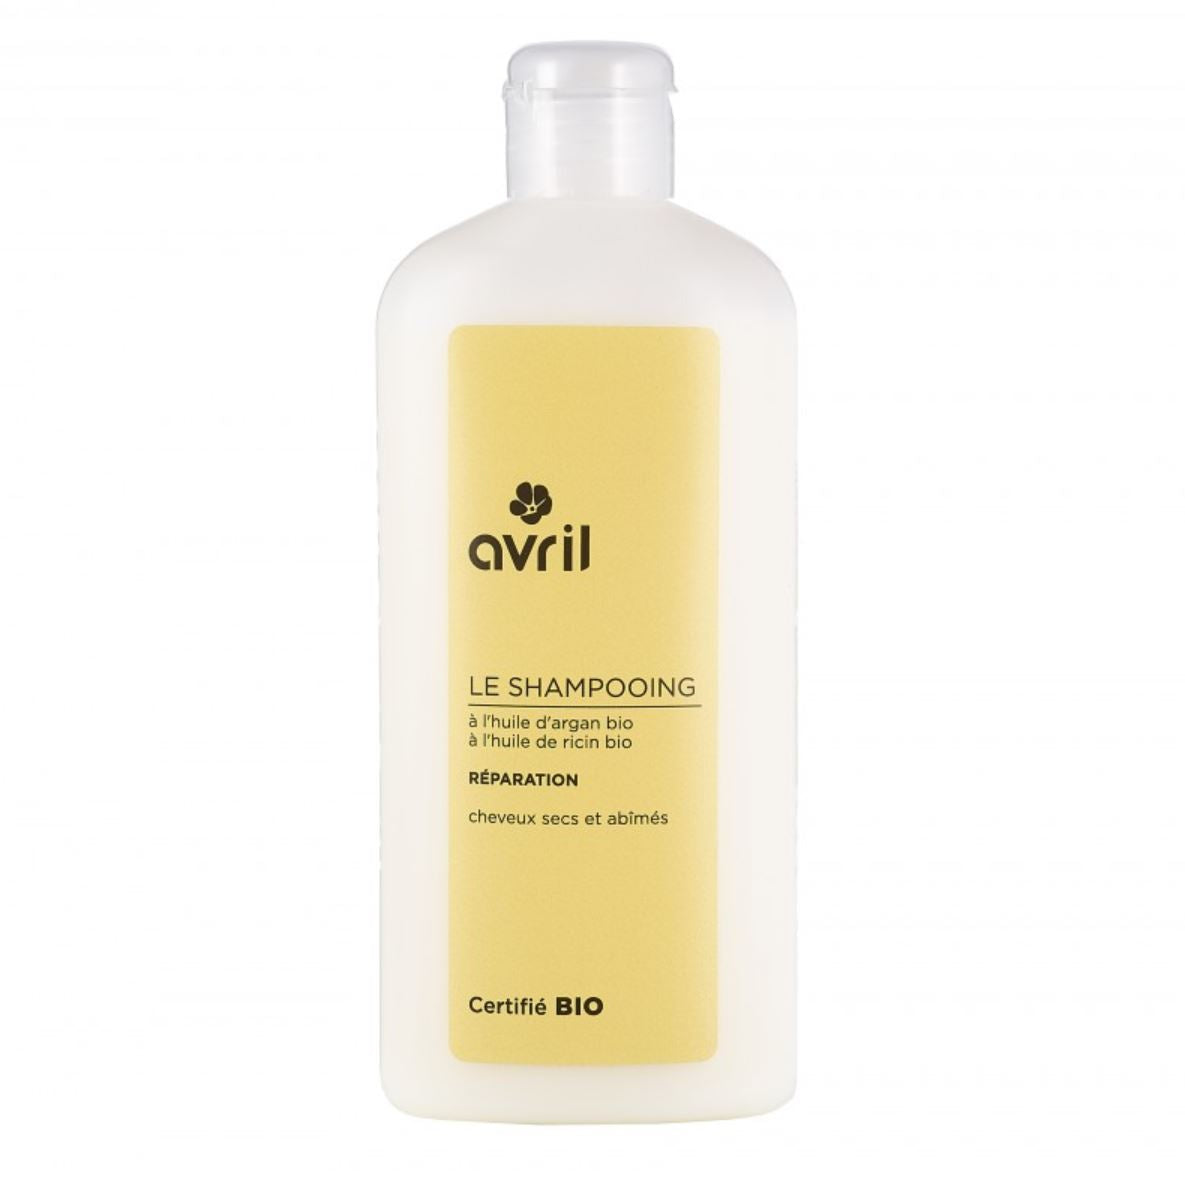 AVRIL SHAMPOO REPAIR -DRY & DAMAGED HAIR 250ml - certified organic by ECOCERT